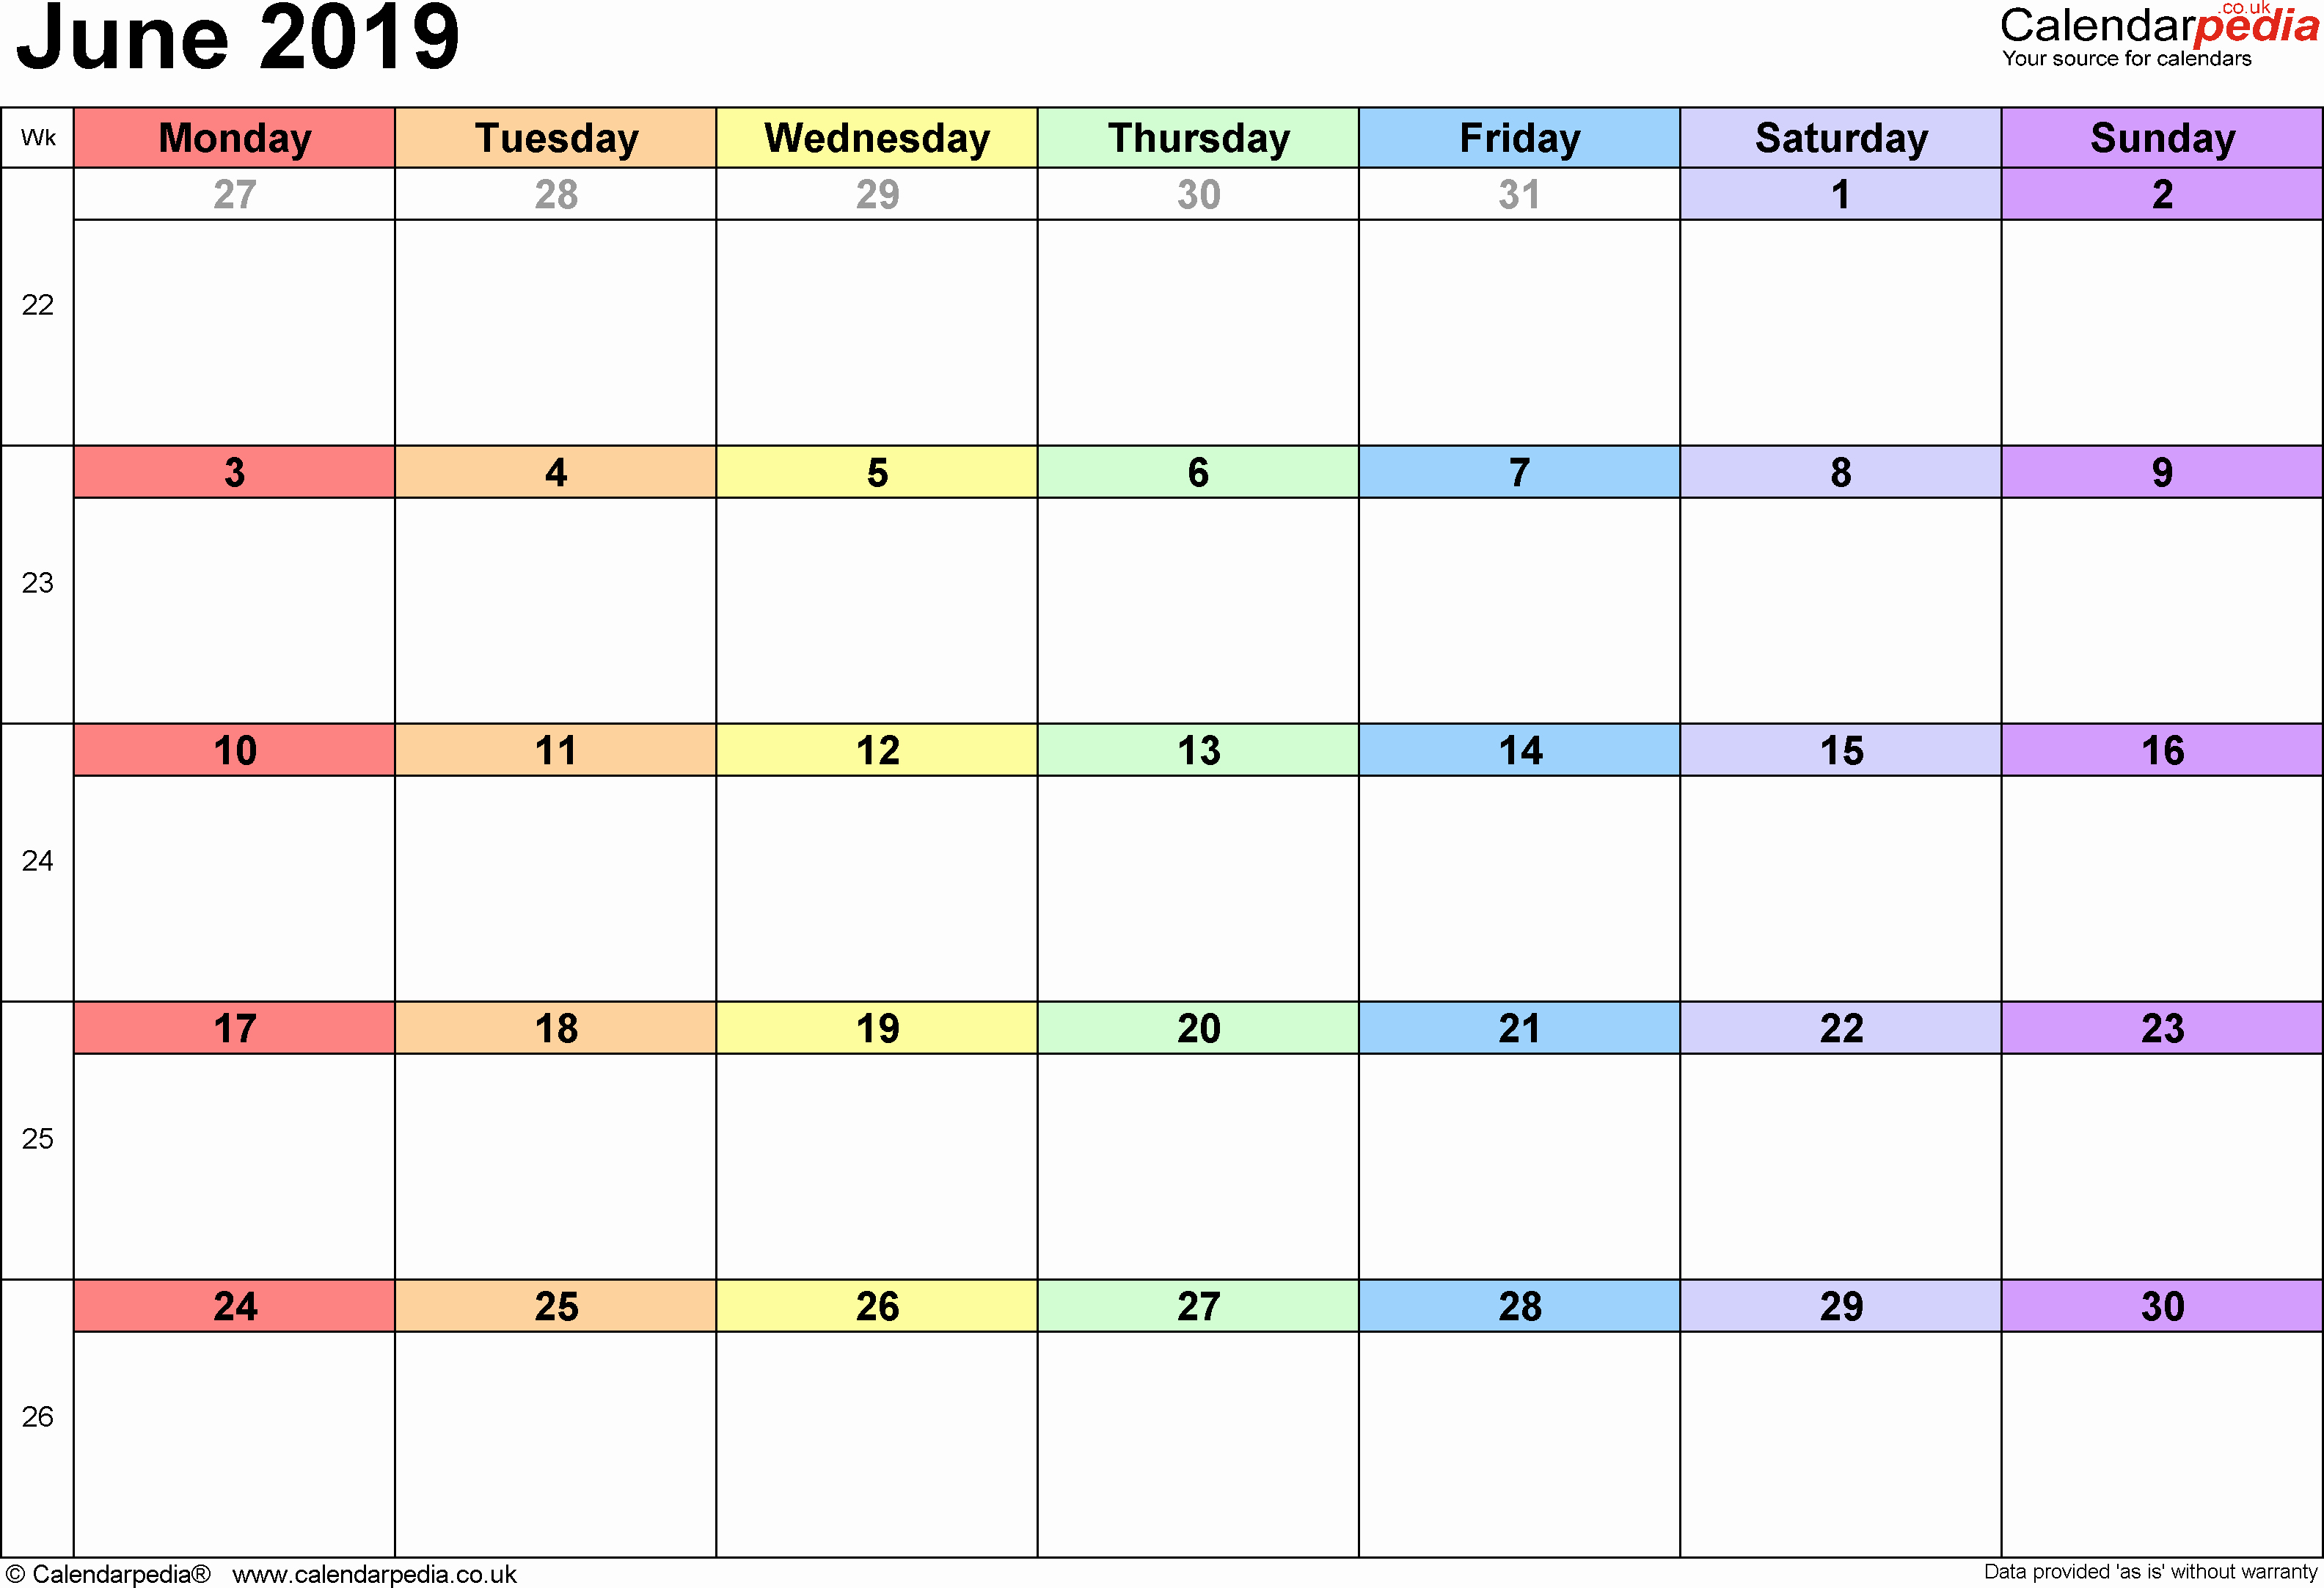 Calendar Template for Google Docs Fresh Calendar Template 2019 Google Docs